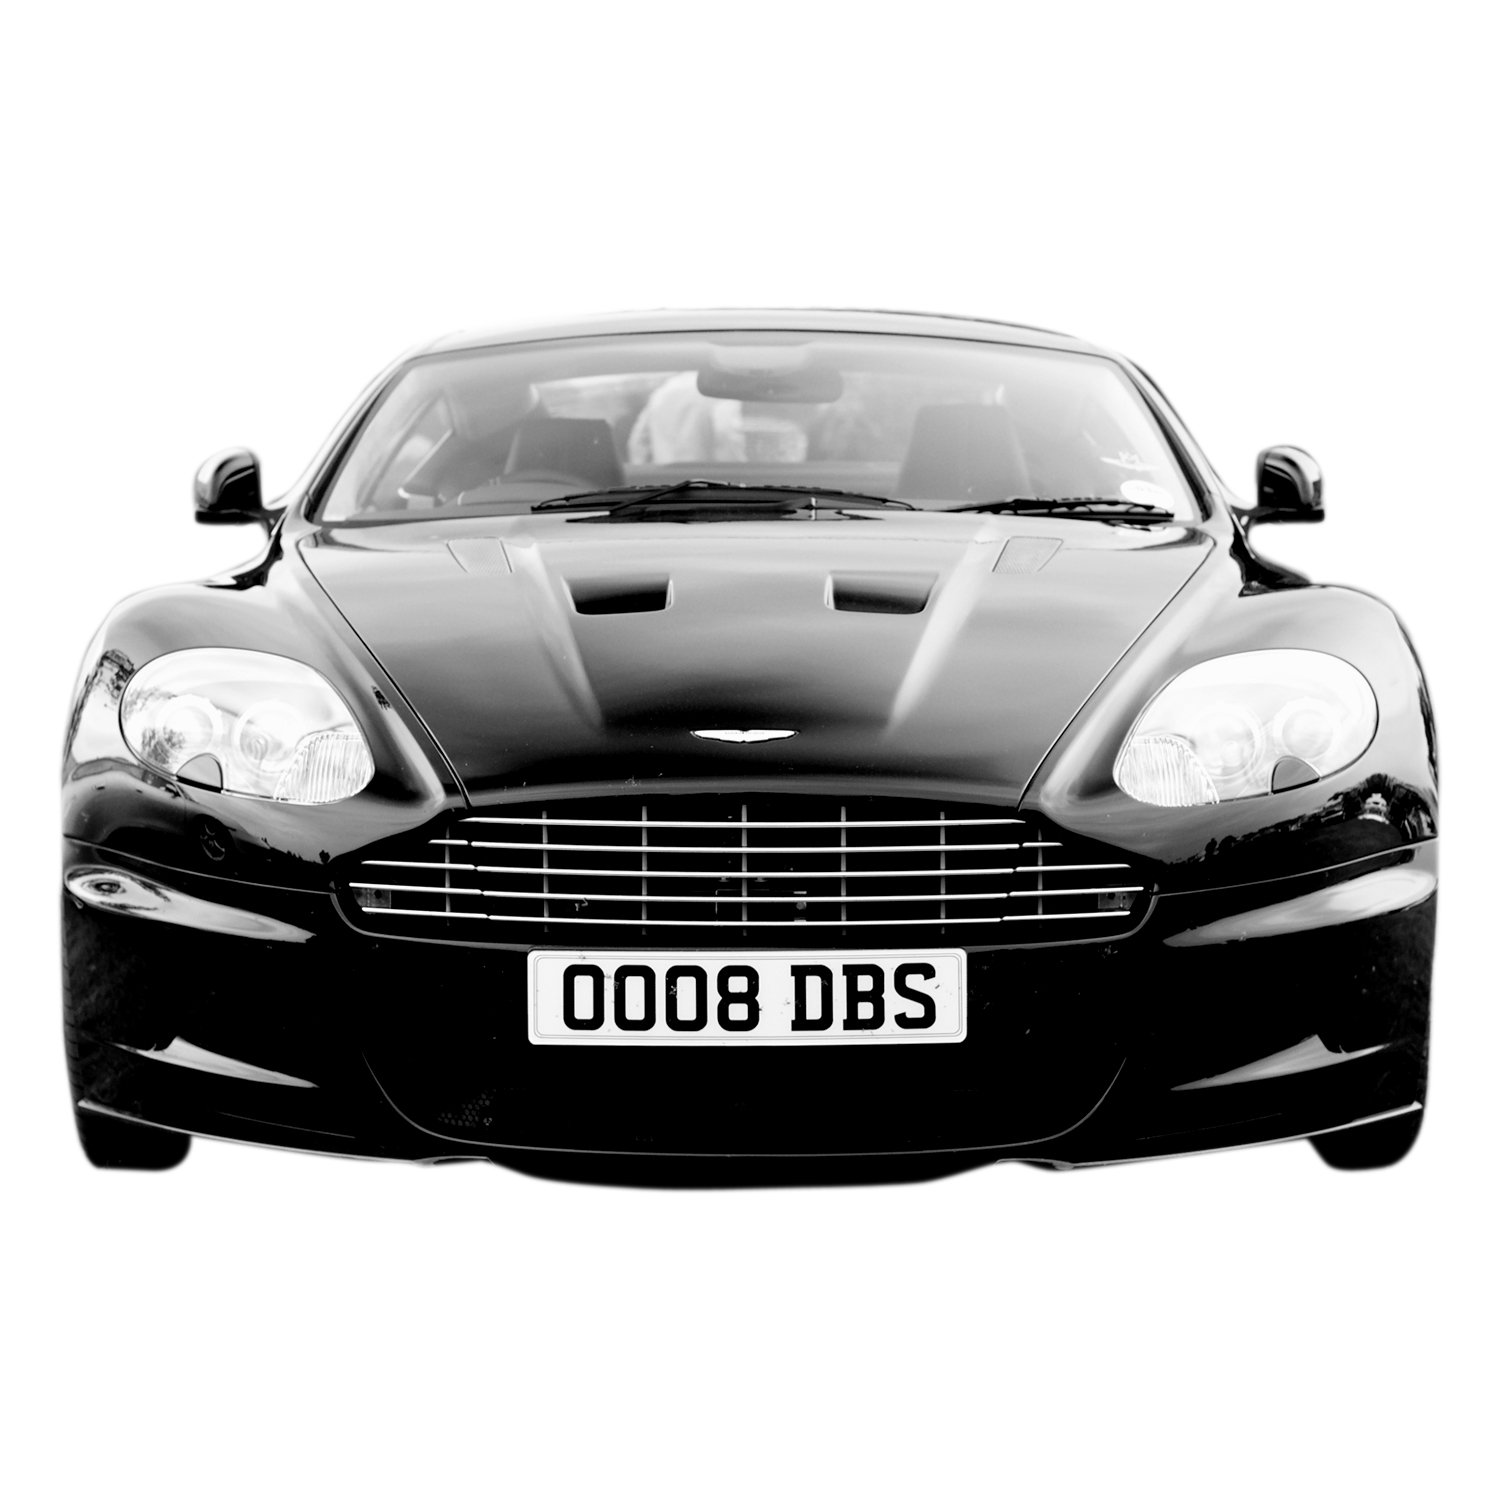 Aston Martin DBS 1 24 Scale RC Radio Controlled Car Colours May